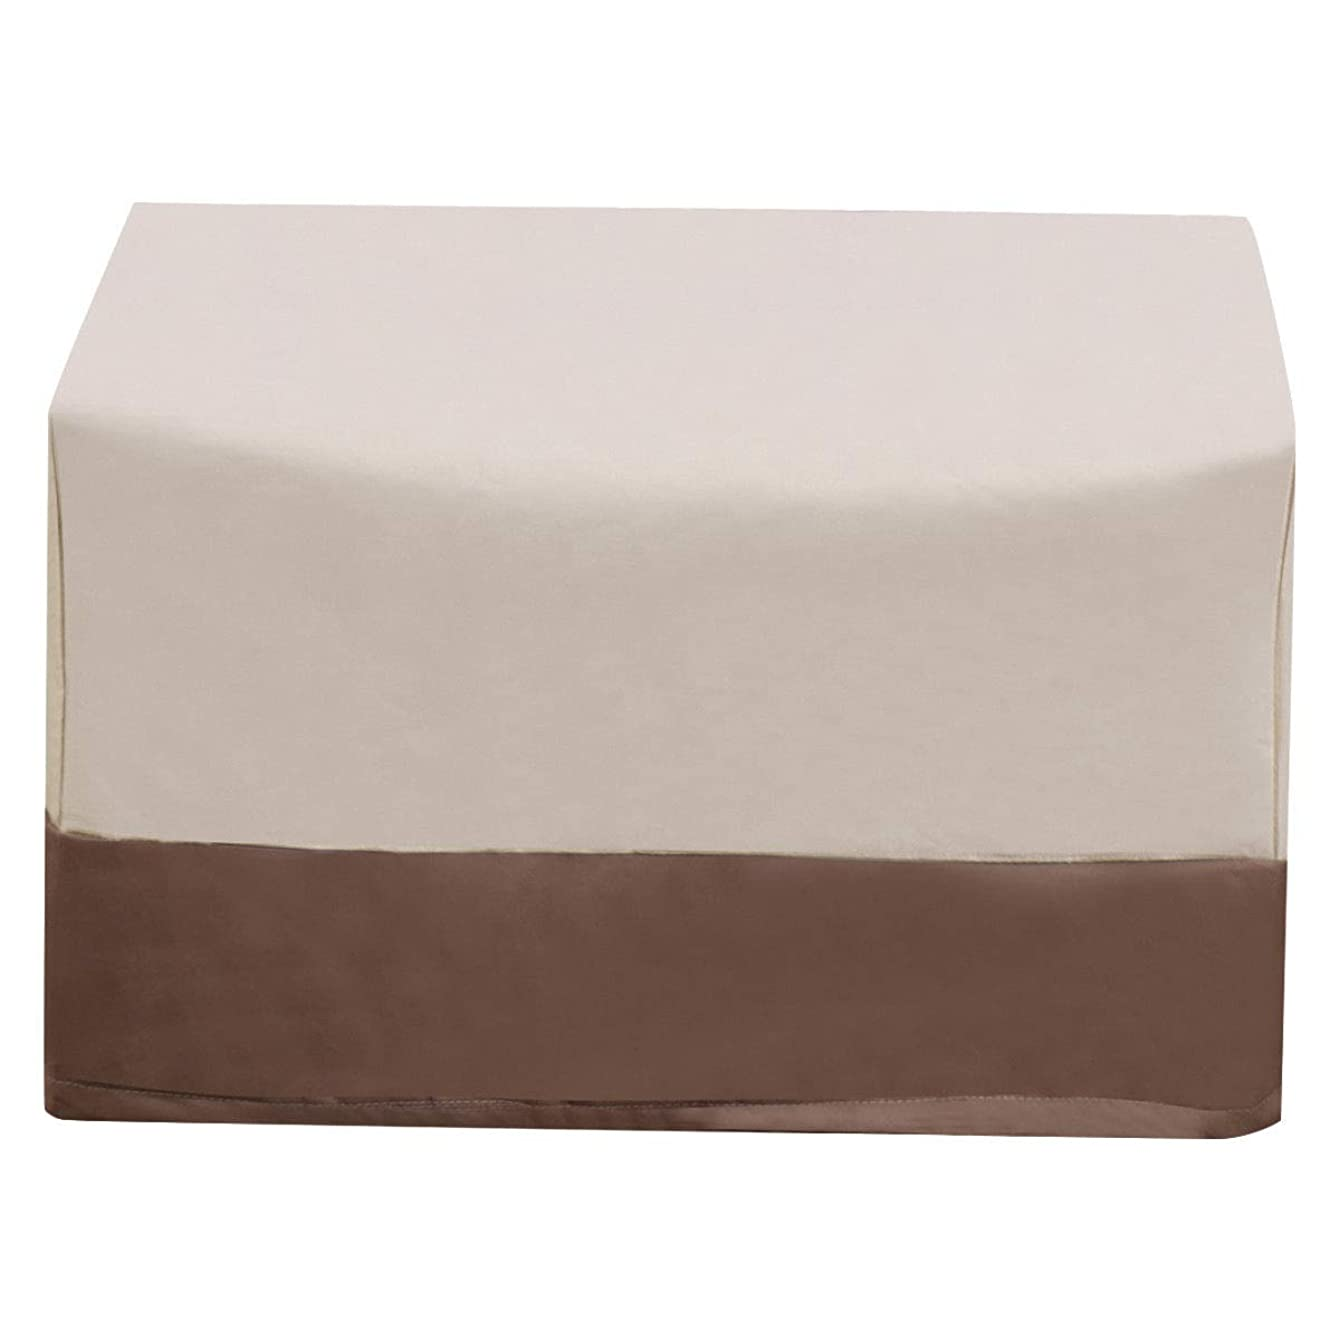 TG888 Waterproof Air Conditioner Cover Outdoor Rectangle Furniture Protection Heavy Duty Beige & Brown